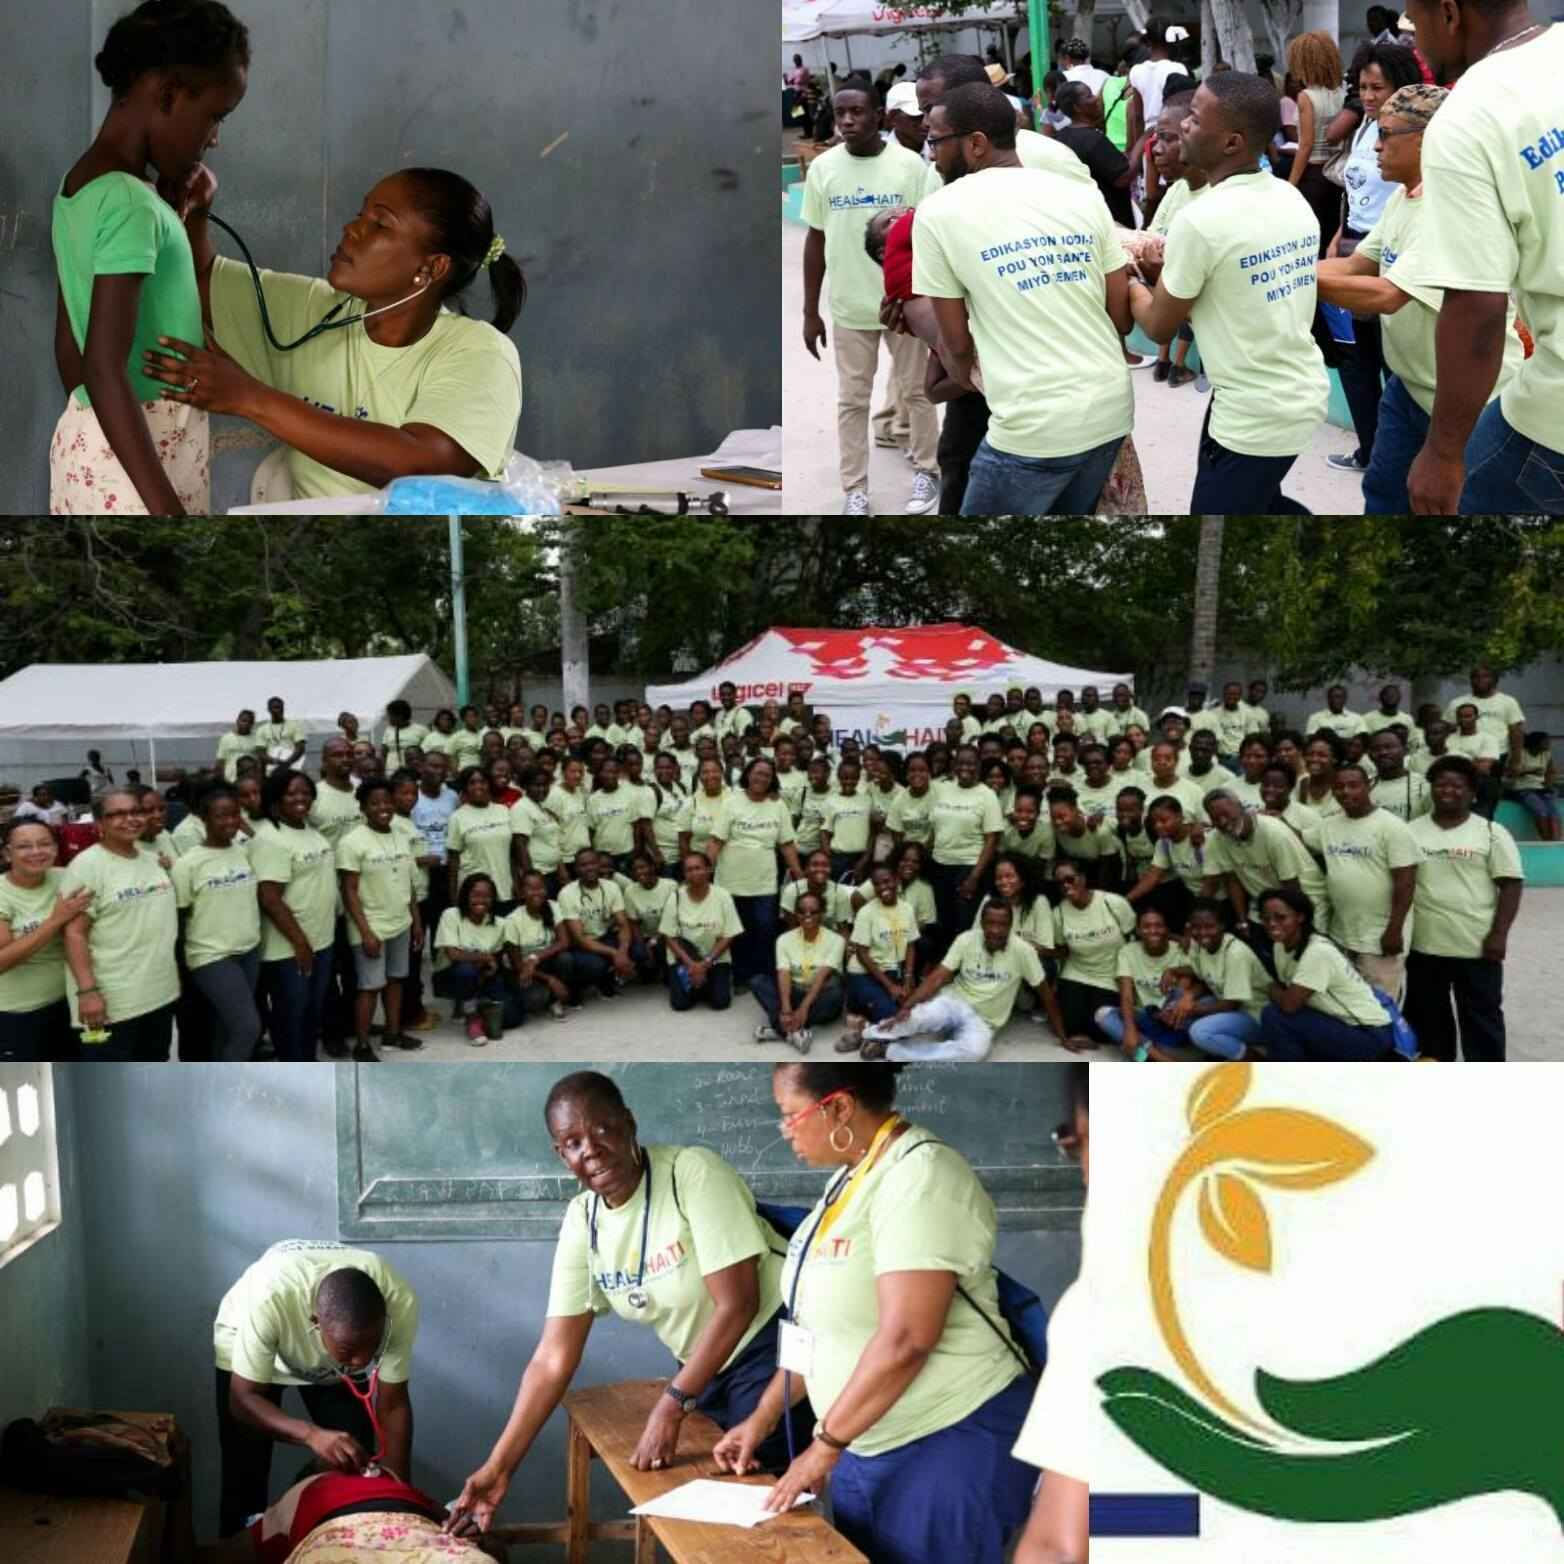 Donate now to help educate, heal and nourish vulnerable families in Haiti.   image